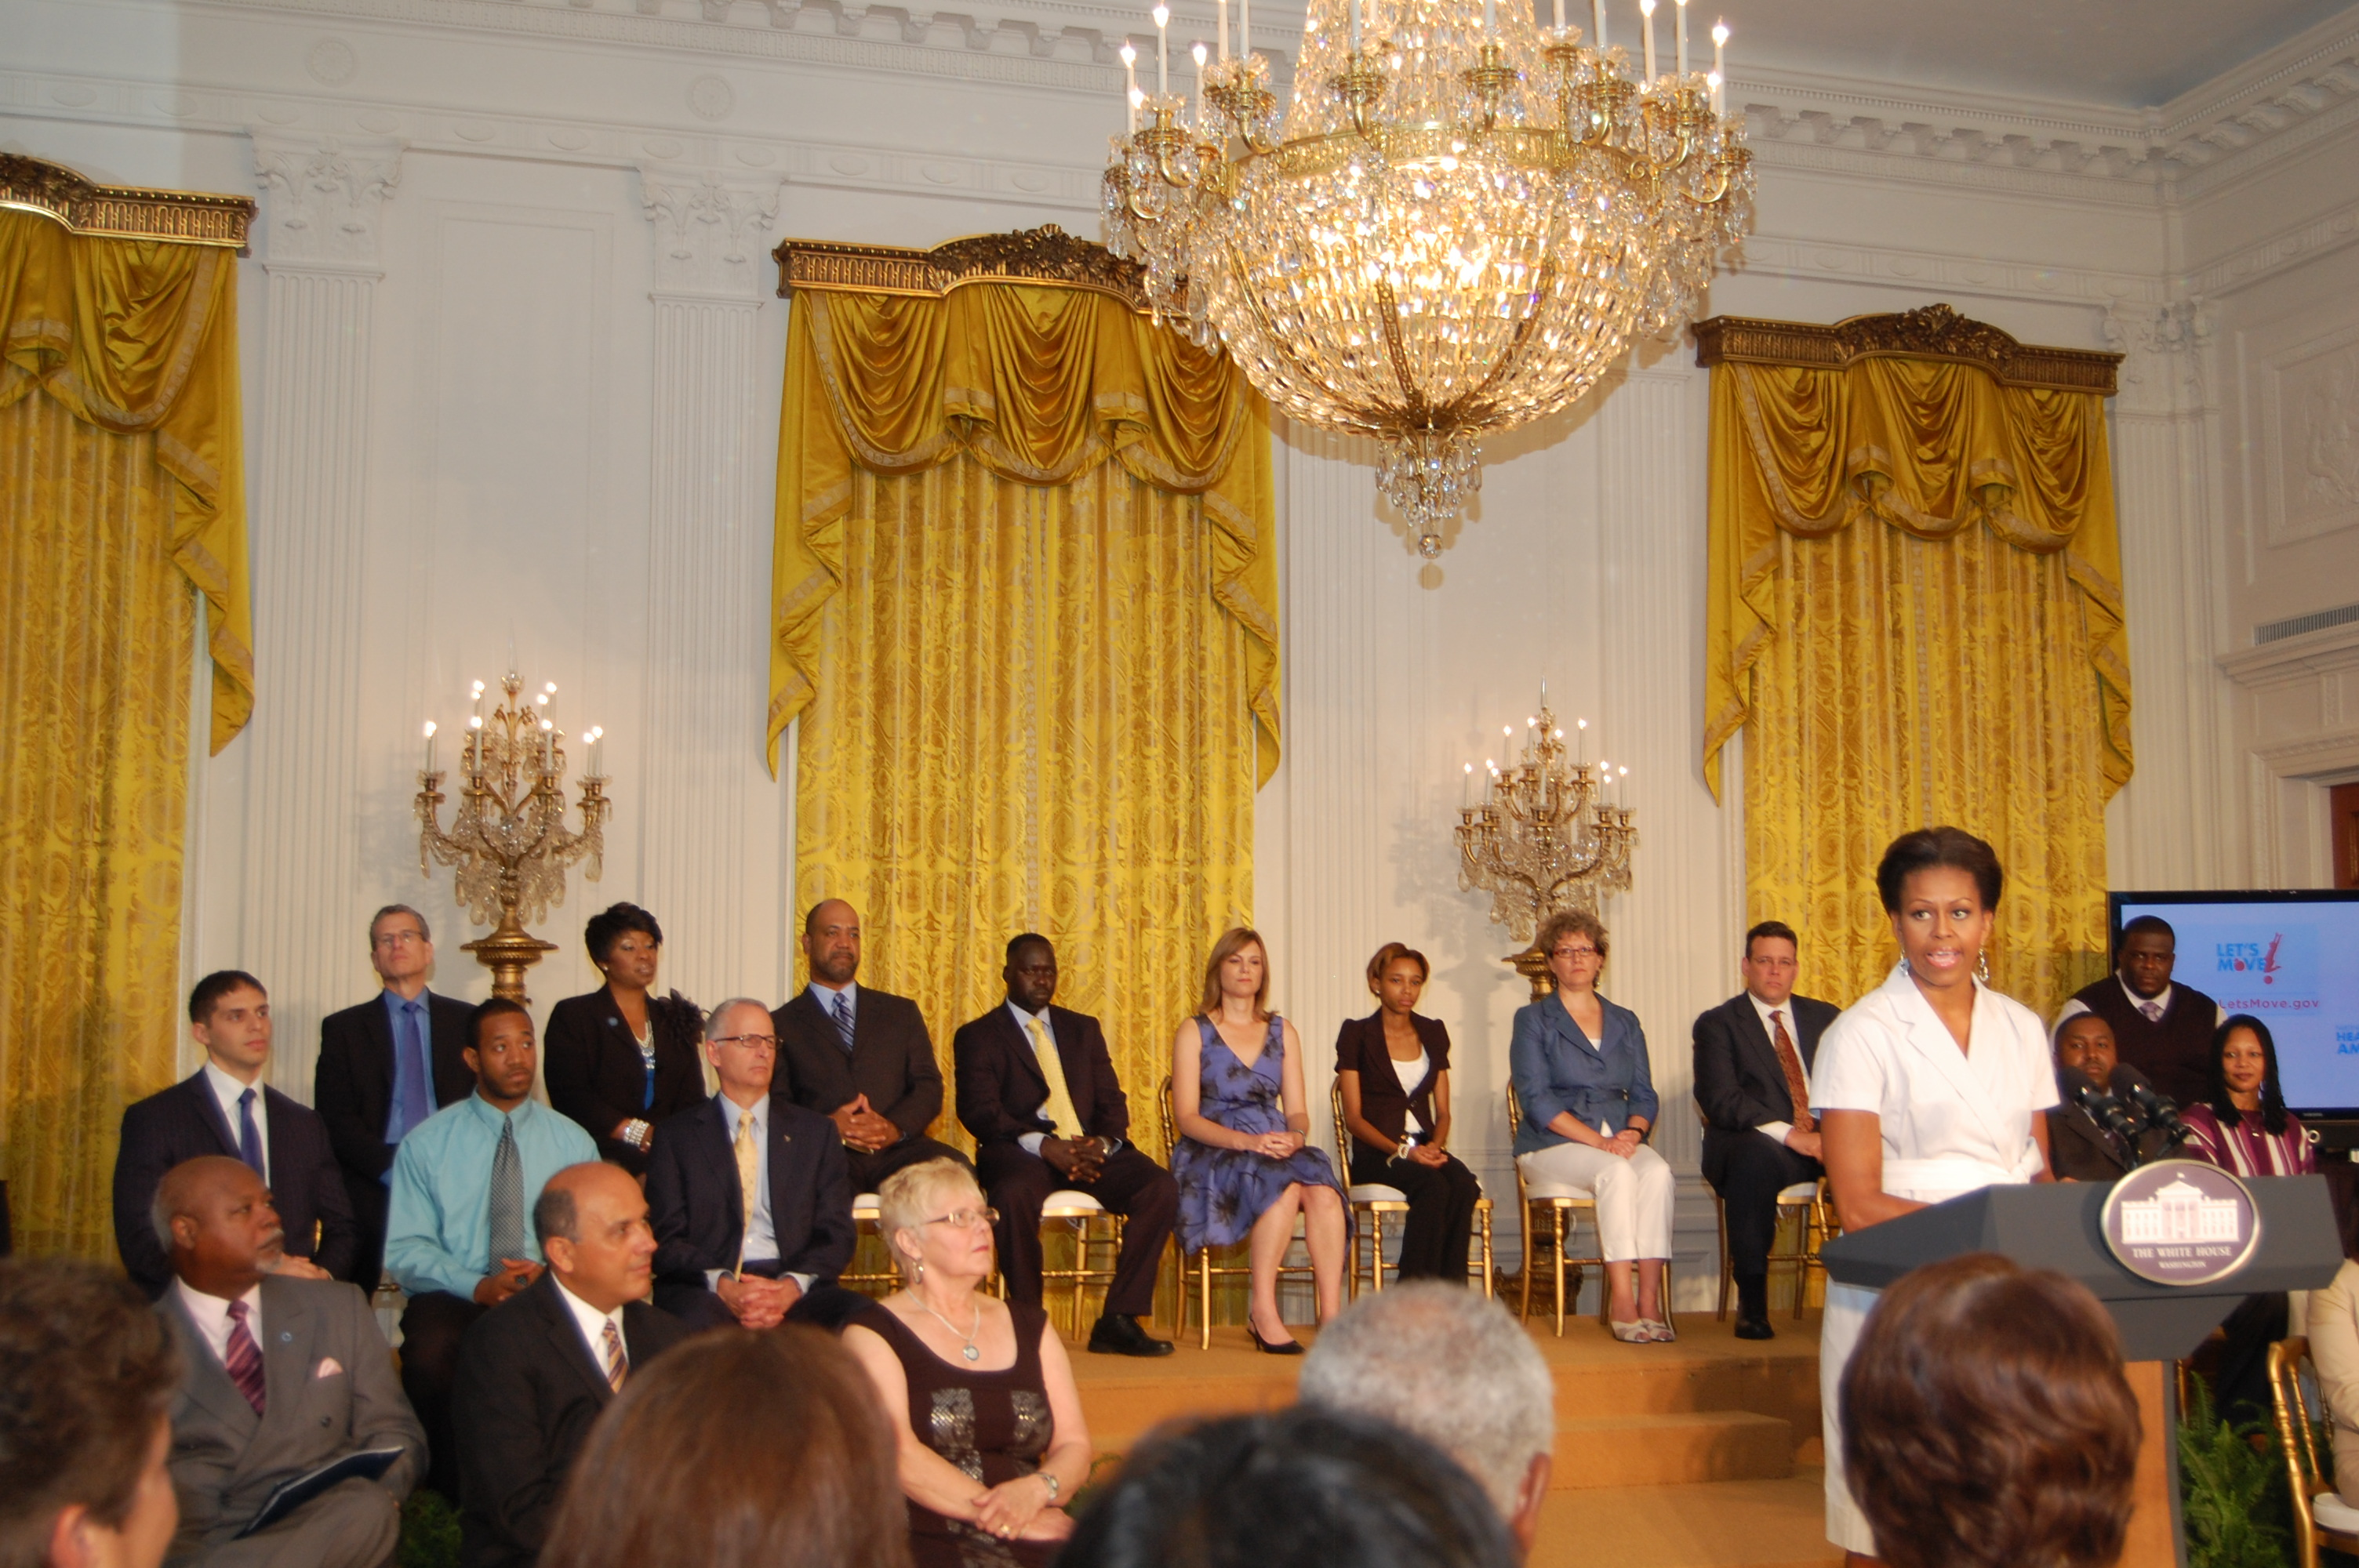 Forest Hill Based Klein S Rite Of Maryland For Making Healthy Food More Readily Available In Areas That Need It At White House Ceremony Wednesday